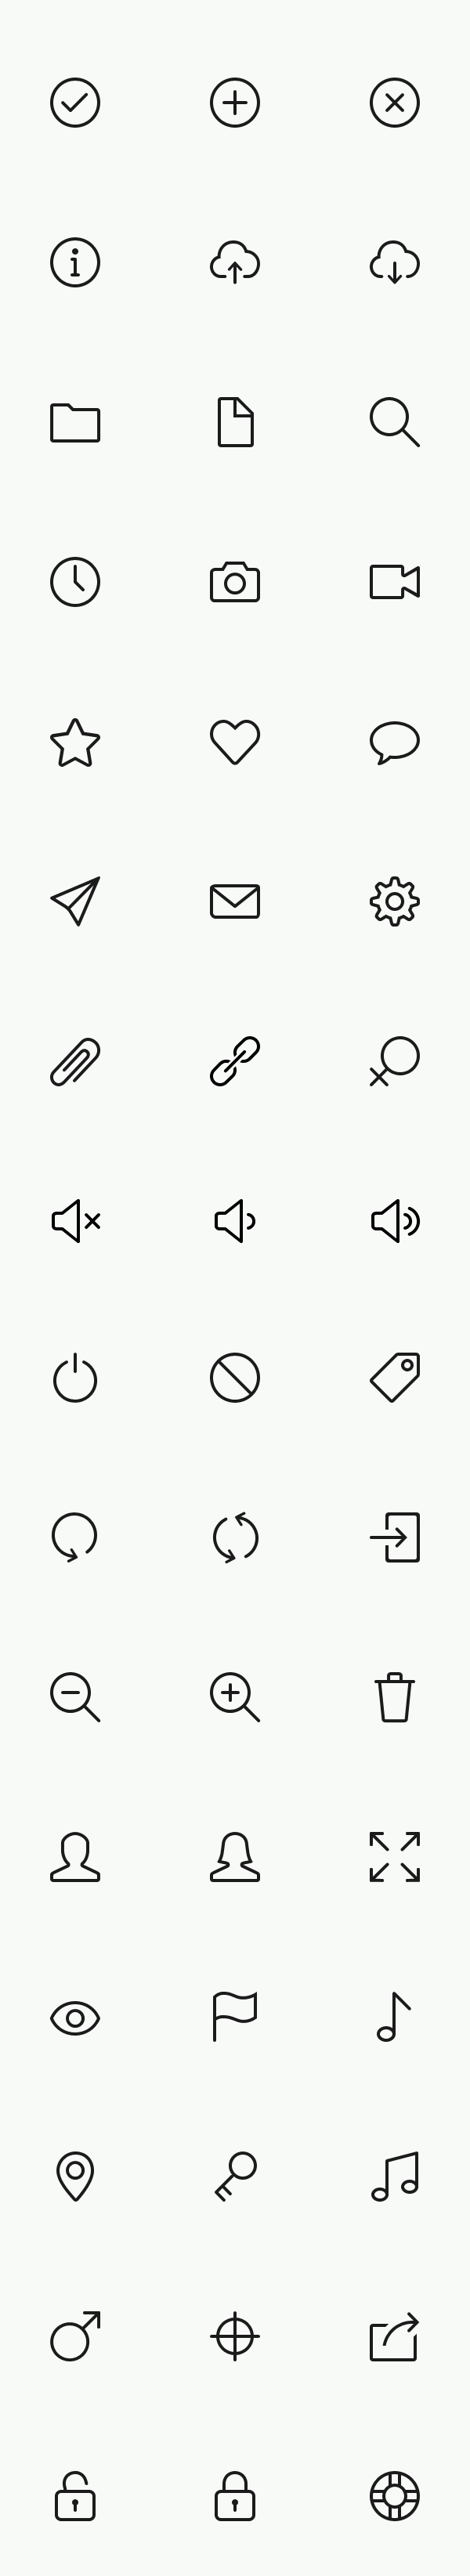 Icon stroke line iOS 7 simple psd freebie icons outline free